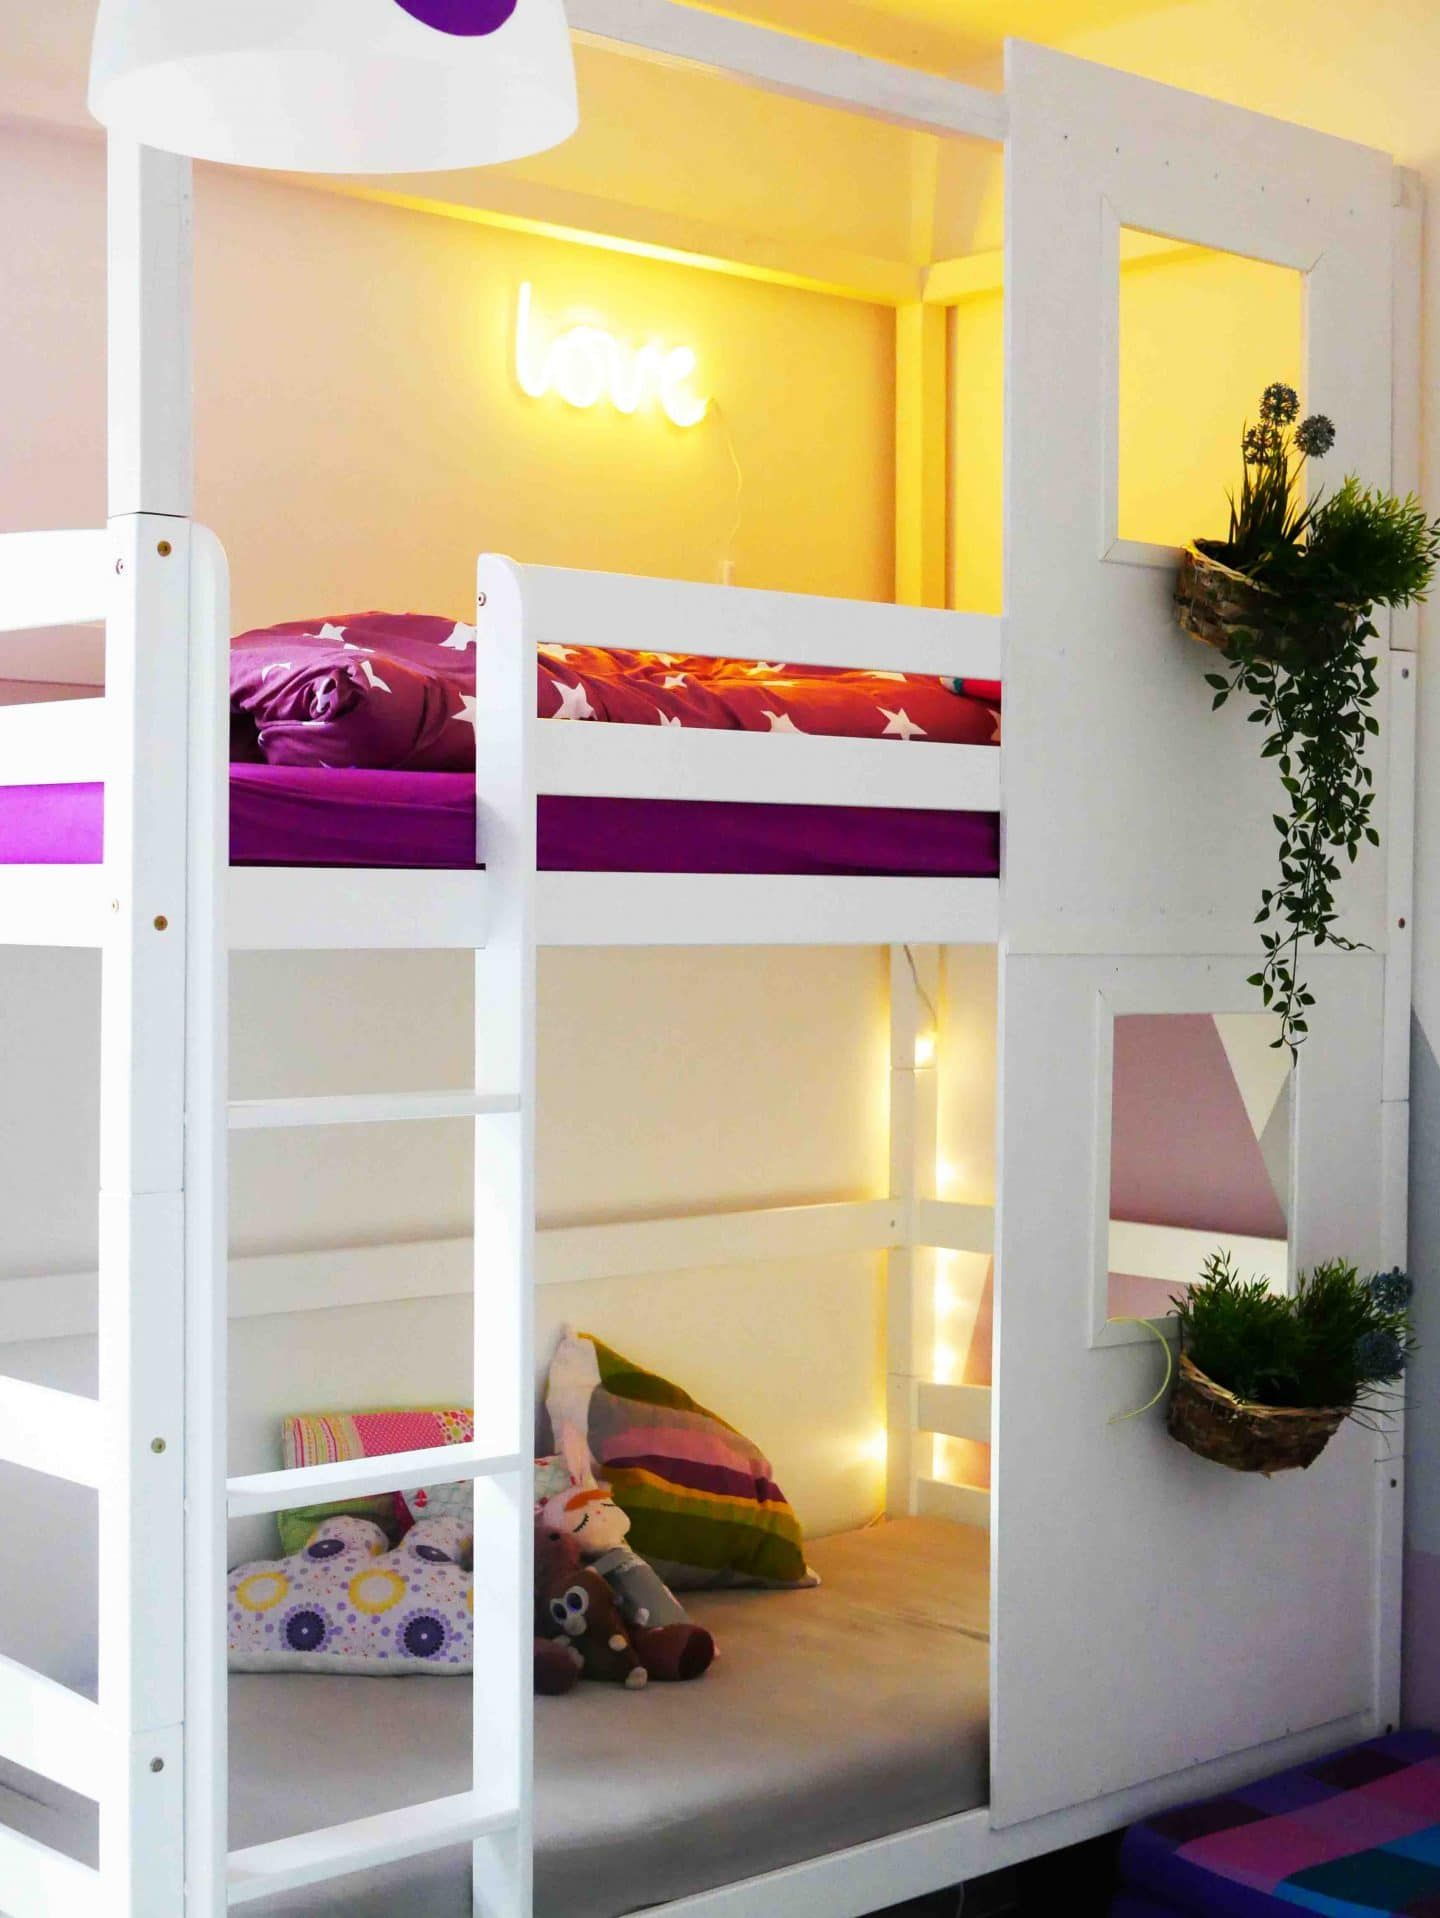 Photo of A house bed for siblings: We transform a bunk bed into a house https://familieberlin.de